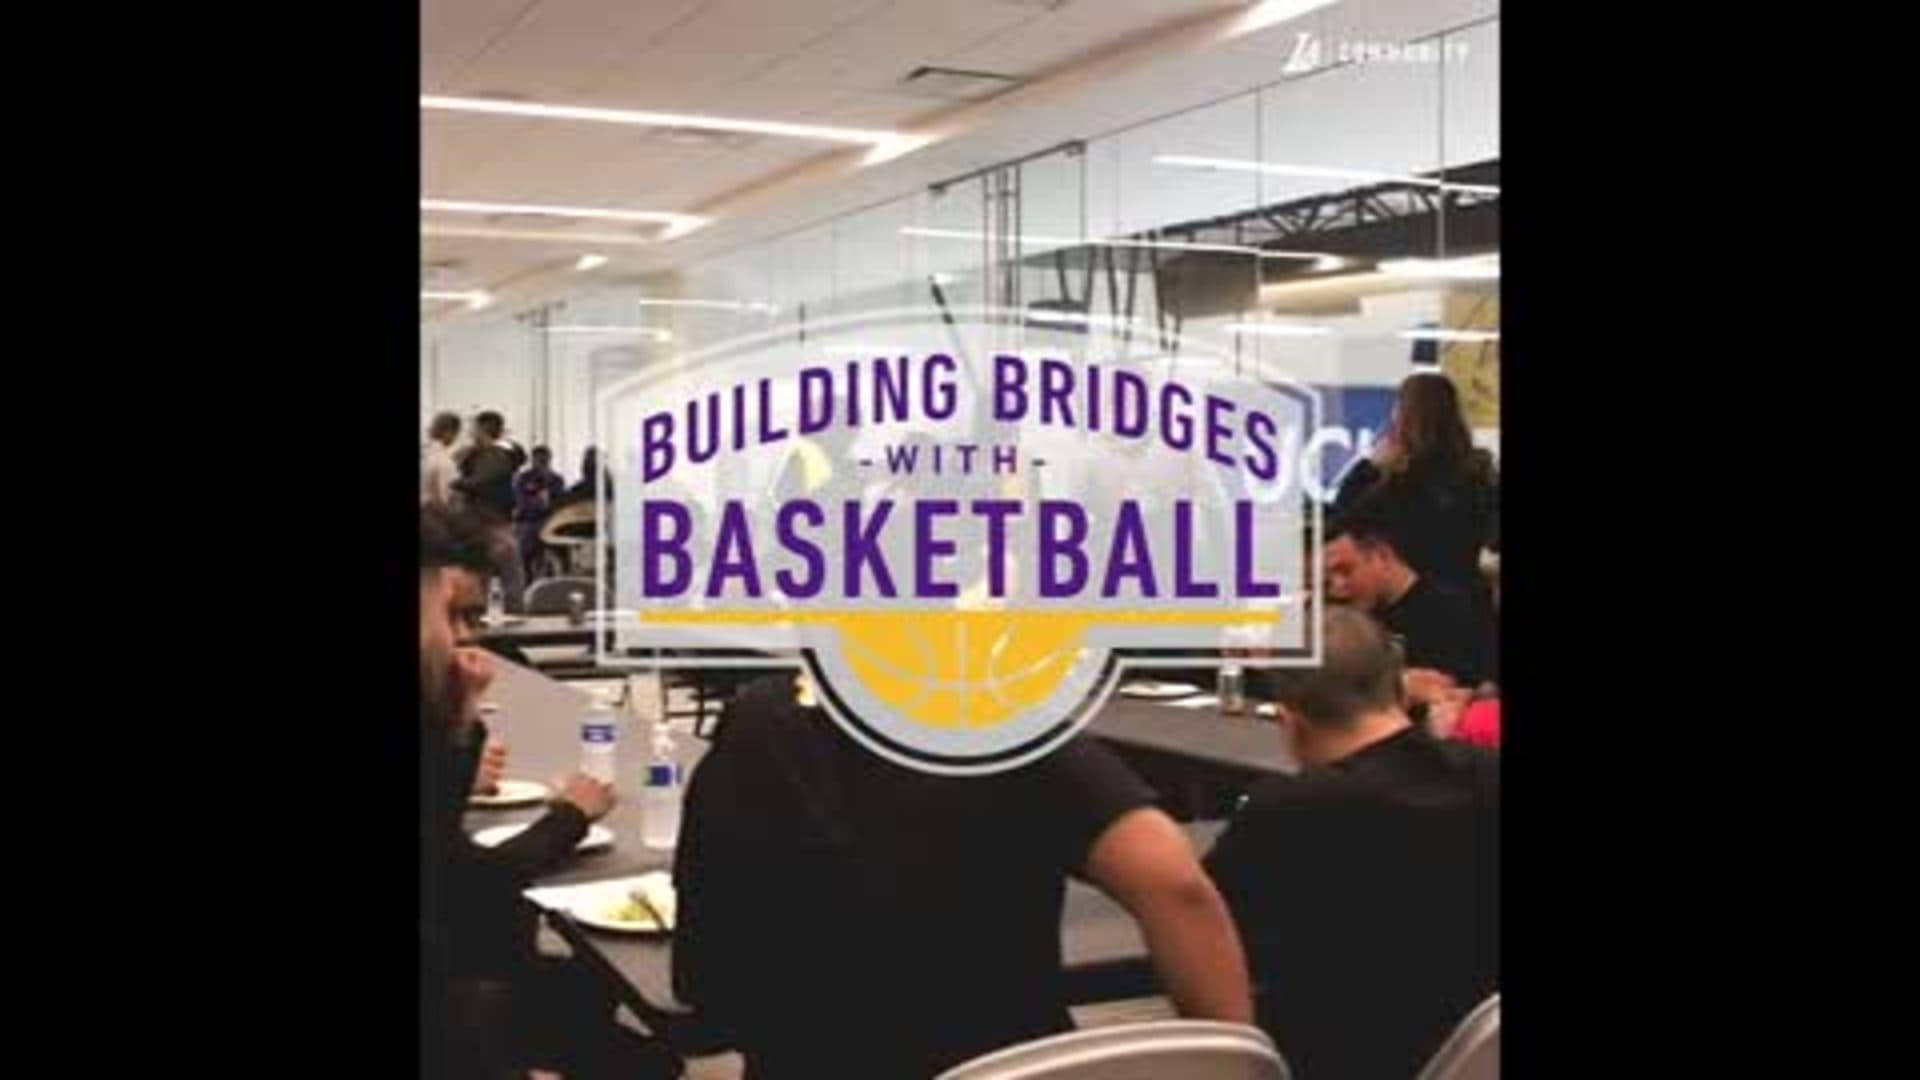 Building Bridges with Basketball 2020